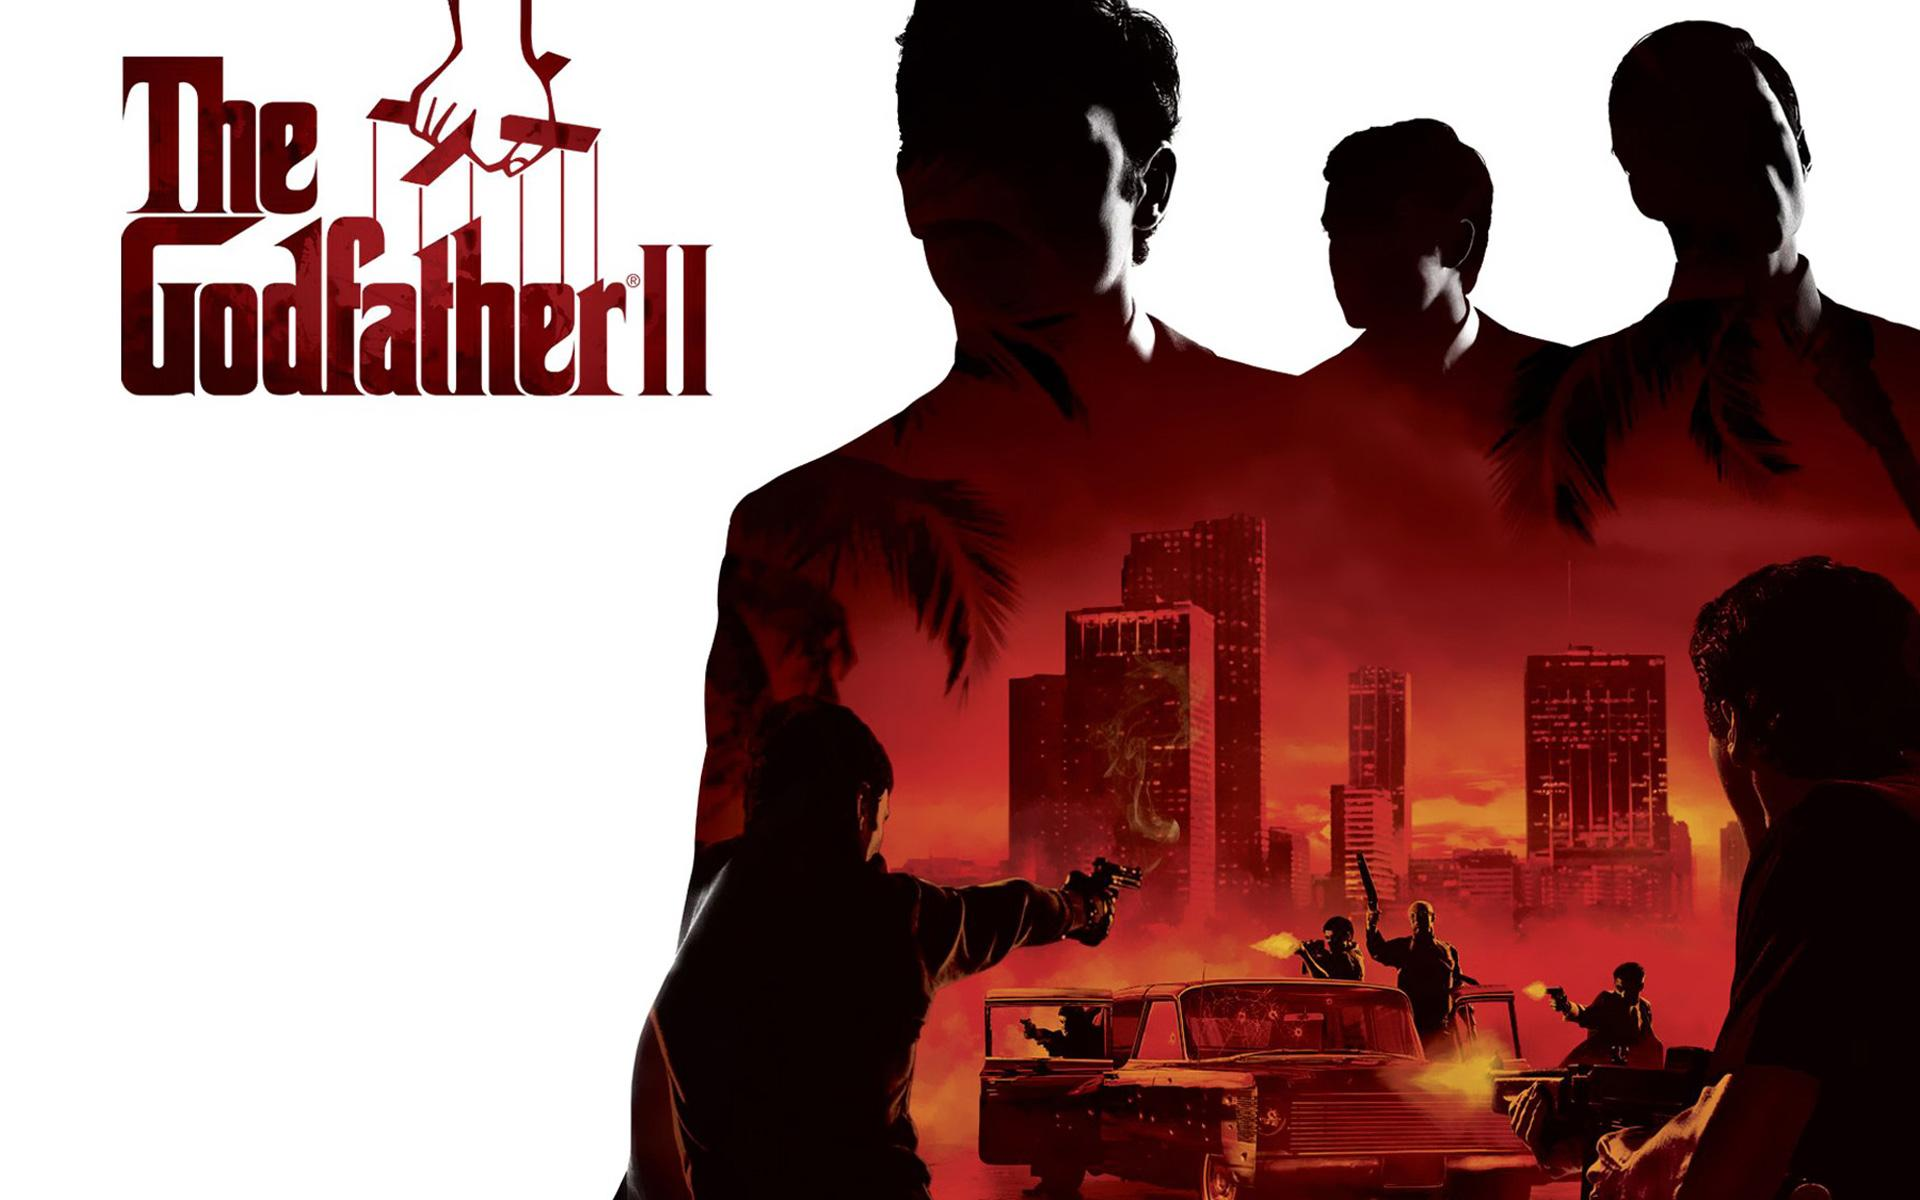 Best 59+ The Godfather II Wallpapers on HipWallpapers